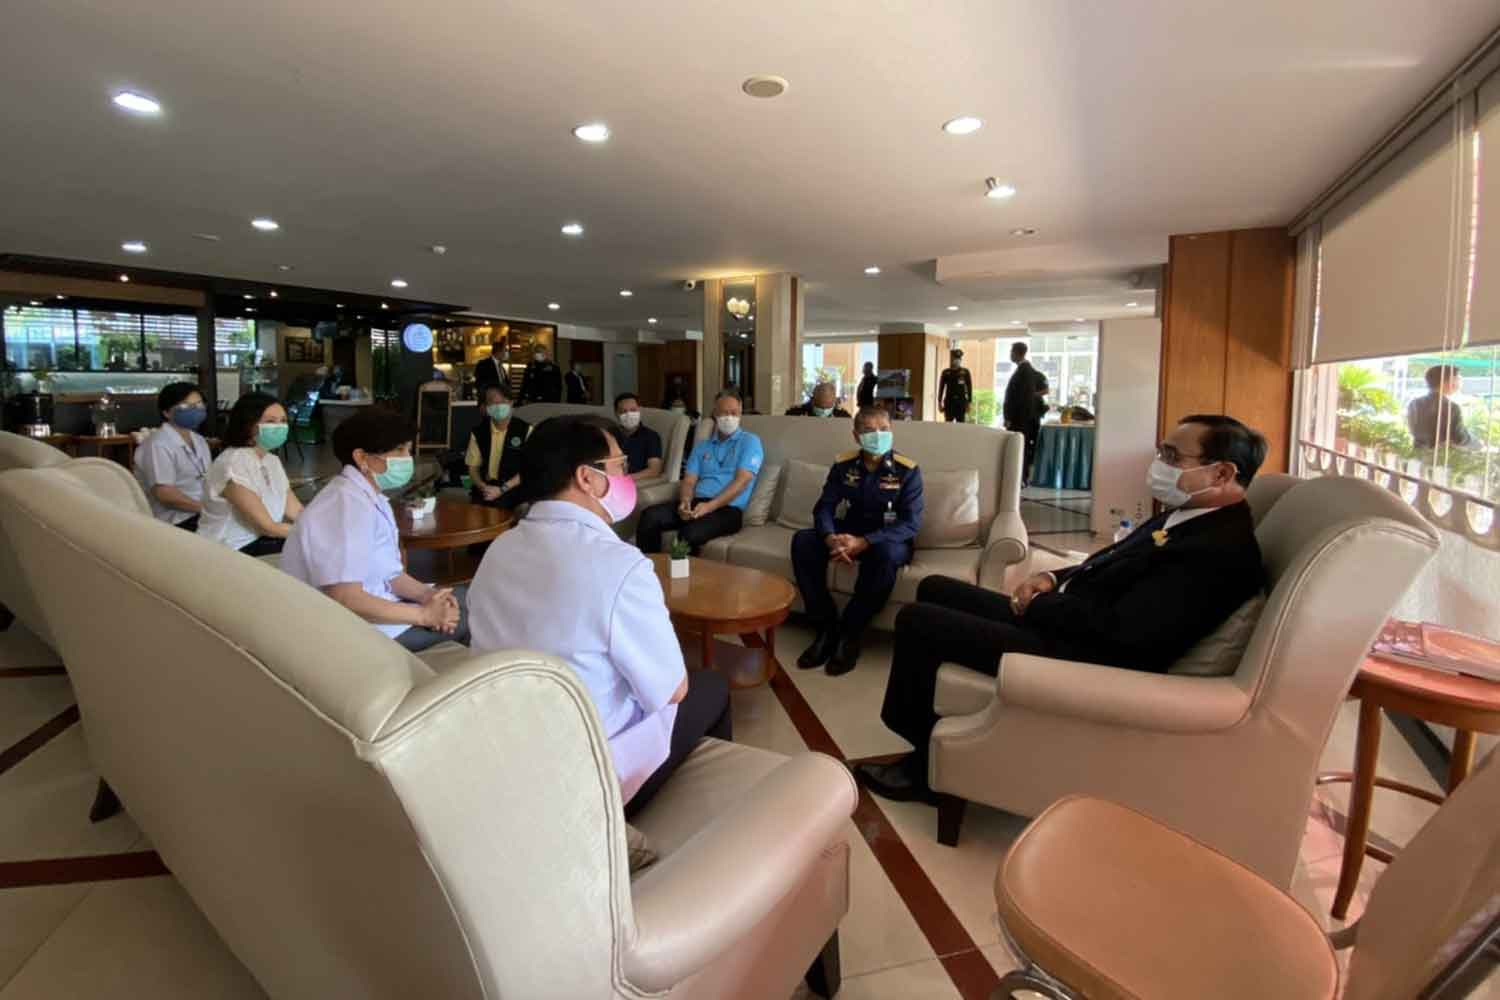 Prime Minister Prayut Chan-o-cha, right, visits Patra Hotel in Bangkok on Wednesday. The hotel offers a quarantine service for Thai returnees. (Government House photo)